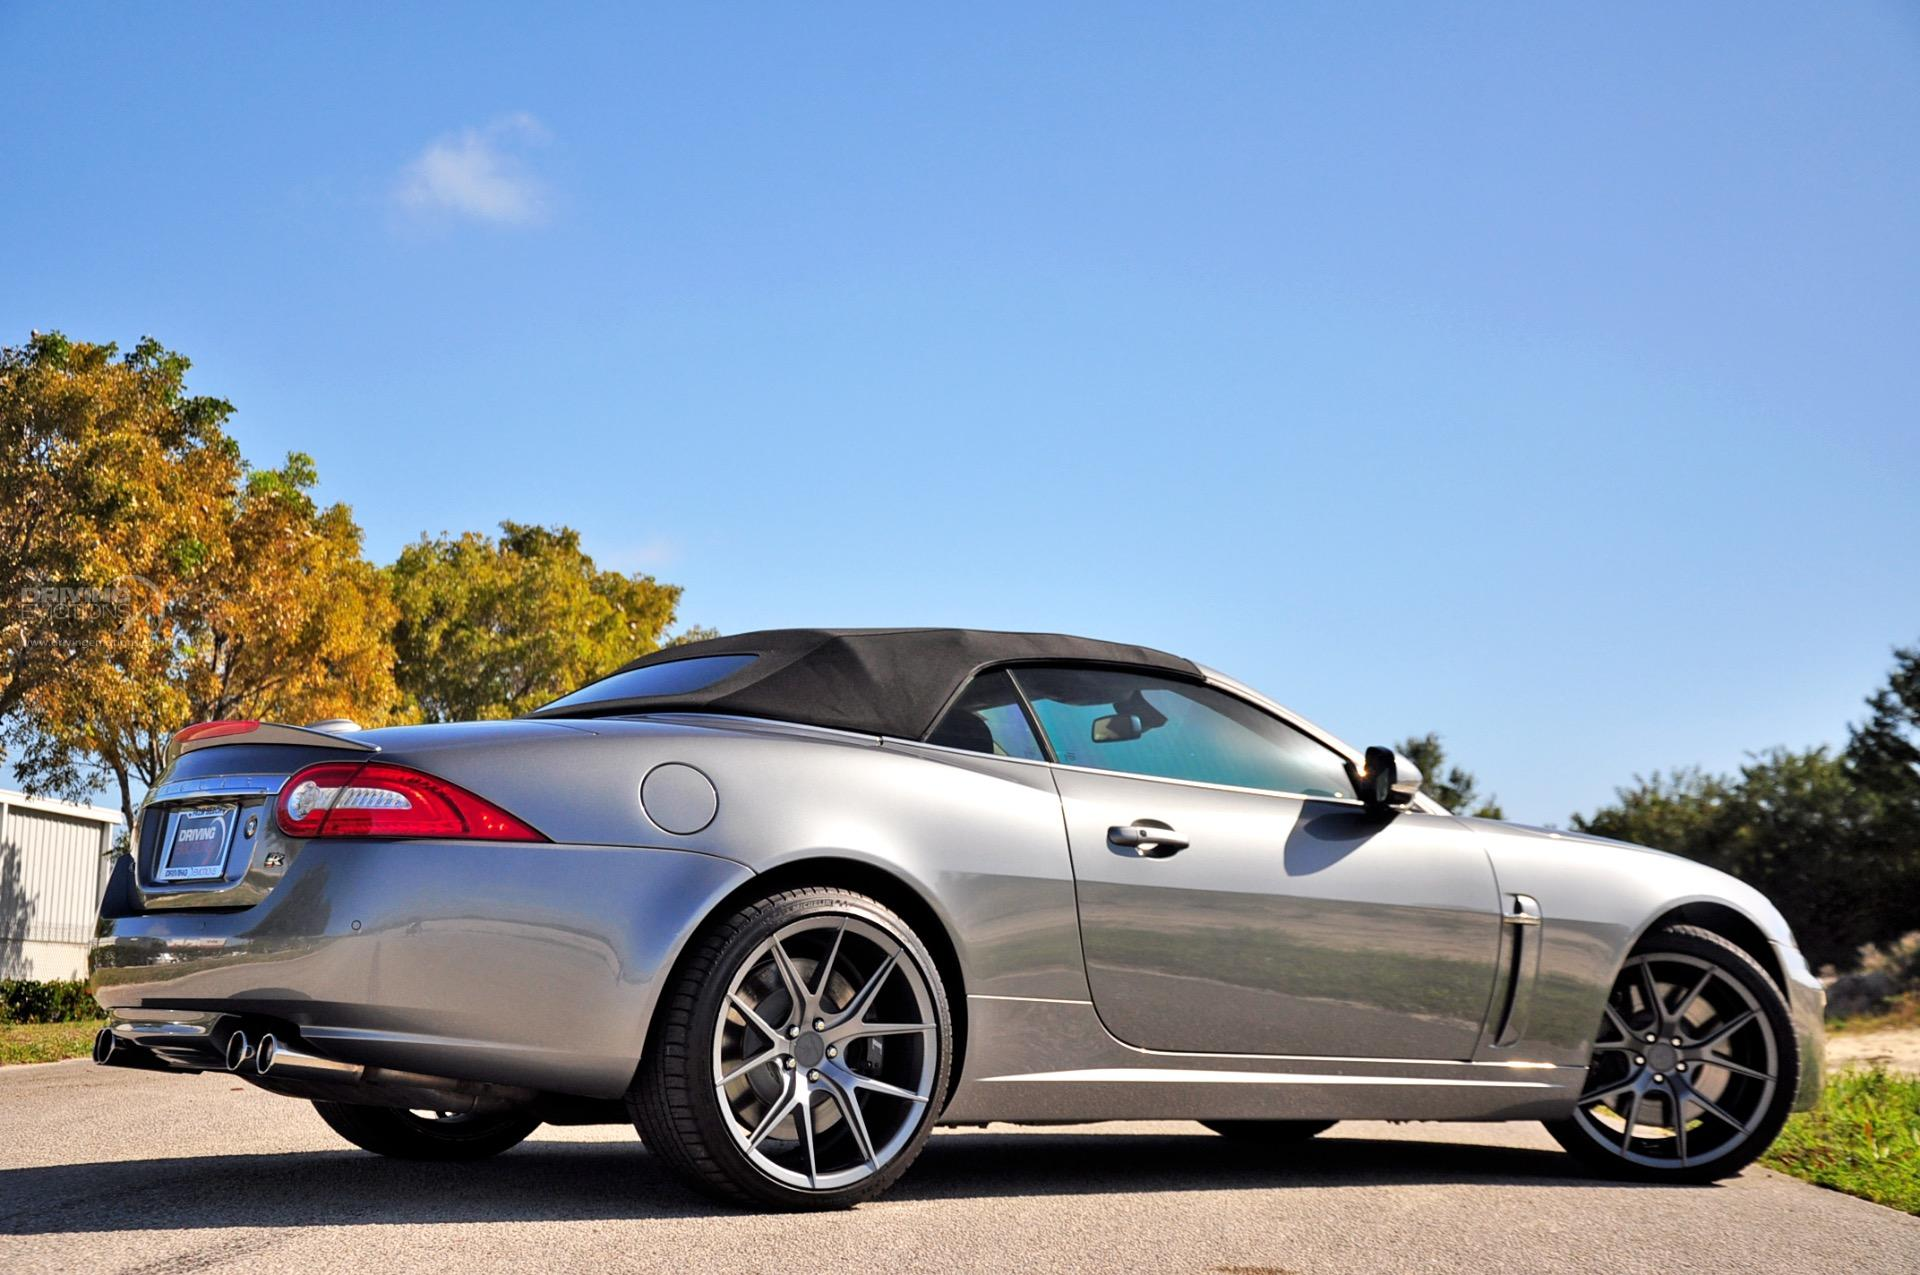 2010 jaguar xkr convertible xkr stock 5839 for sale near. Black Bedroom Furniture Sets. Home Design Ideas